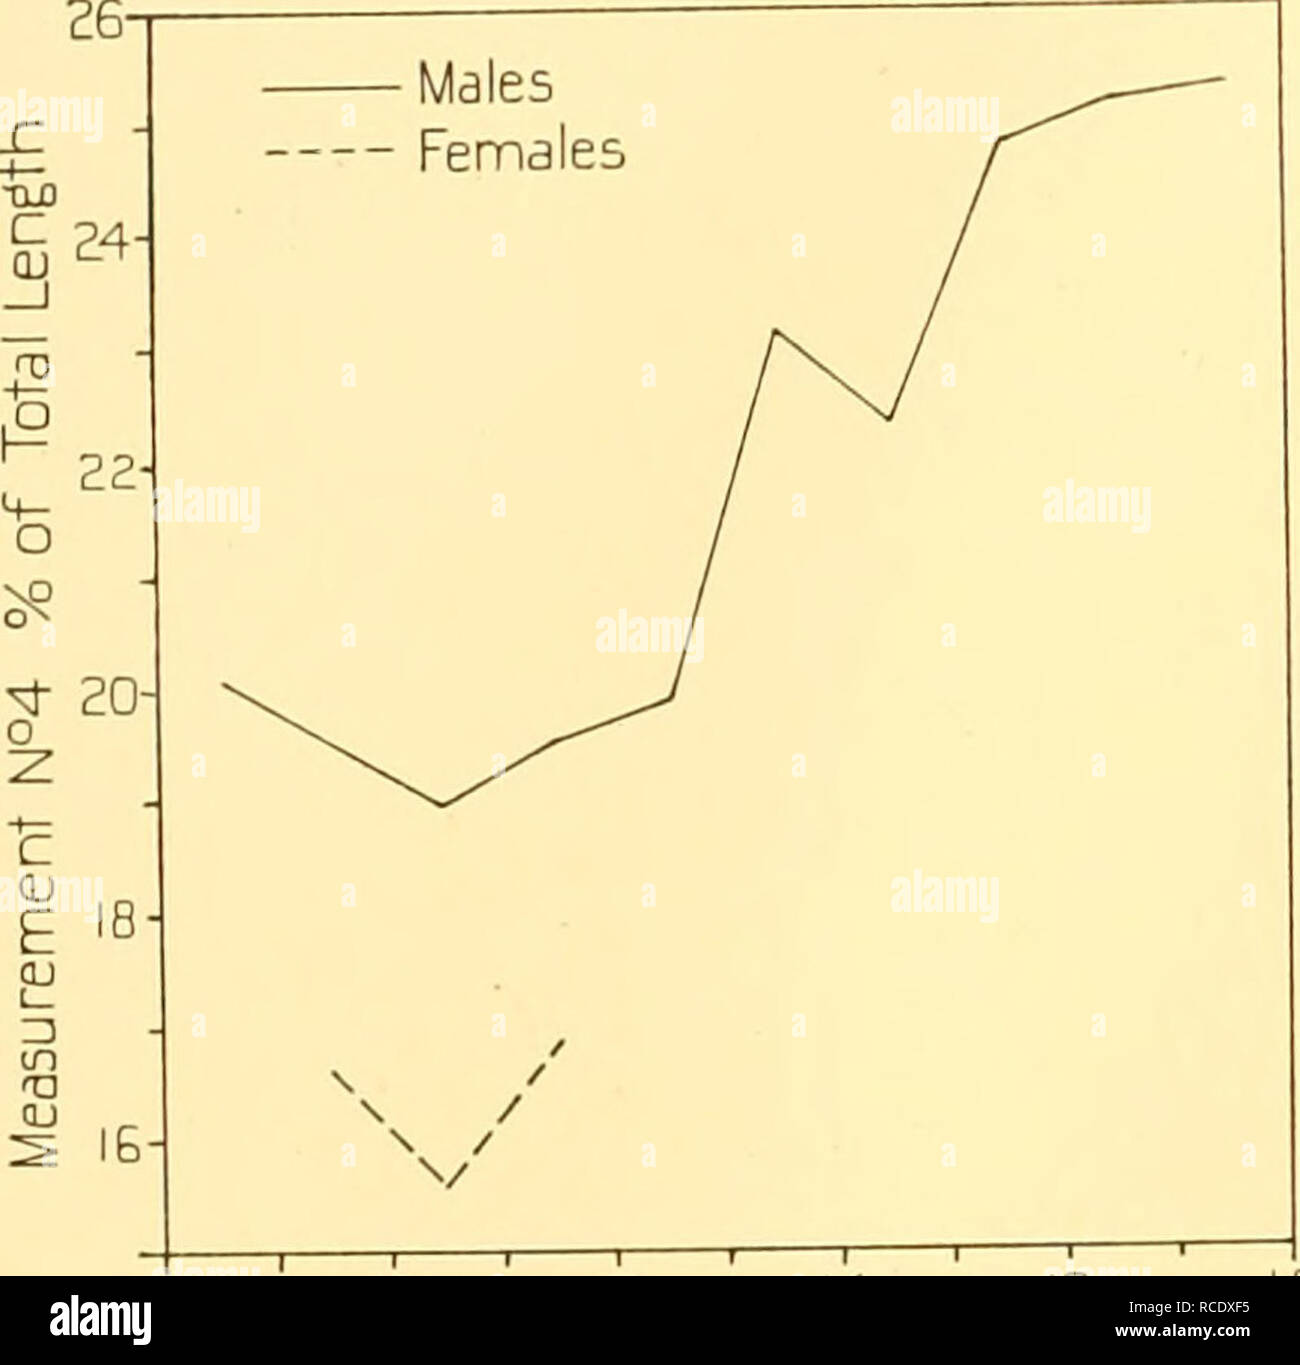 . Discovery reports. Discovery (Ship); Scientific expeditions; Ocean; Antarctica; Falkland Islands. io6 DISCOVERY REPORTS Table V. Sperm ivhale. Females. Measurements. Actual values in metres {roman type): expressed as percentages of total length {italic type) Metre lengths 22. Skull length, condyle to tip of premaxilla 24. Depth of body at dorsal fin 25- Height of head No. of measure- Range Mean No. of measure- Range Mean No. of measure- Range Mean ments ments ments Foetus 1-2 â â â I â 0-32 20-61 I â 0-19 12-26 3-4 â â â I â 0-50 â â â â â â 16-30 â Whale 9-10 â â â â â â I z I-2S 12-60 lO-I - Stock Image